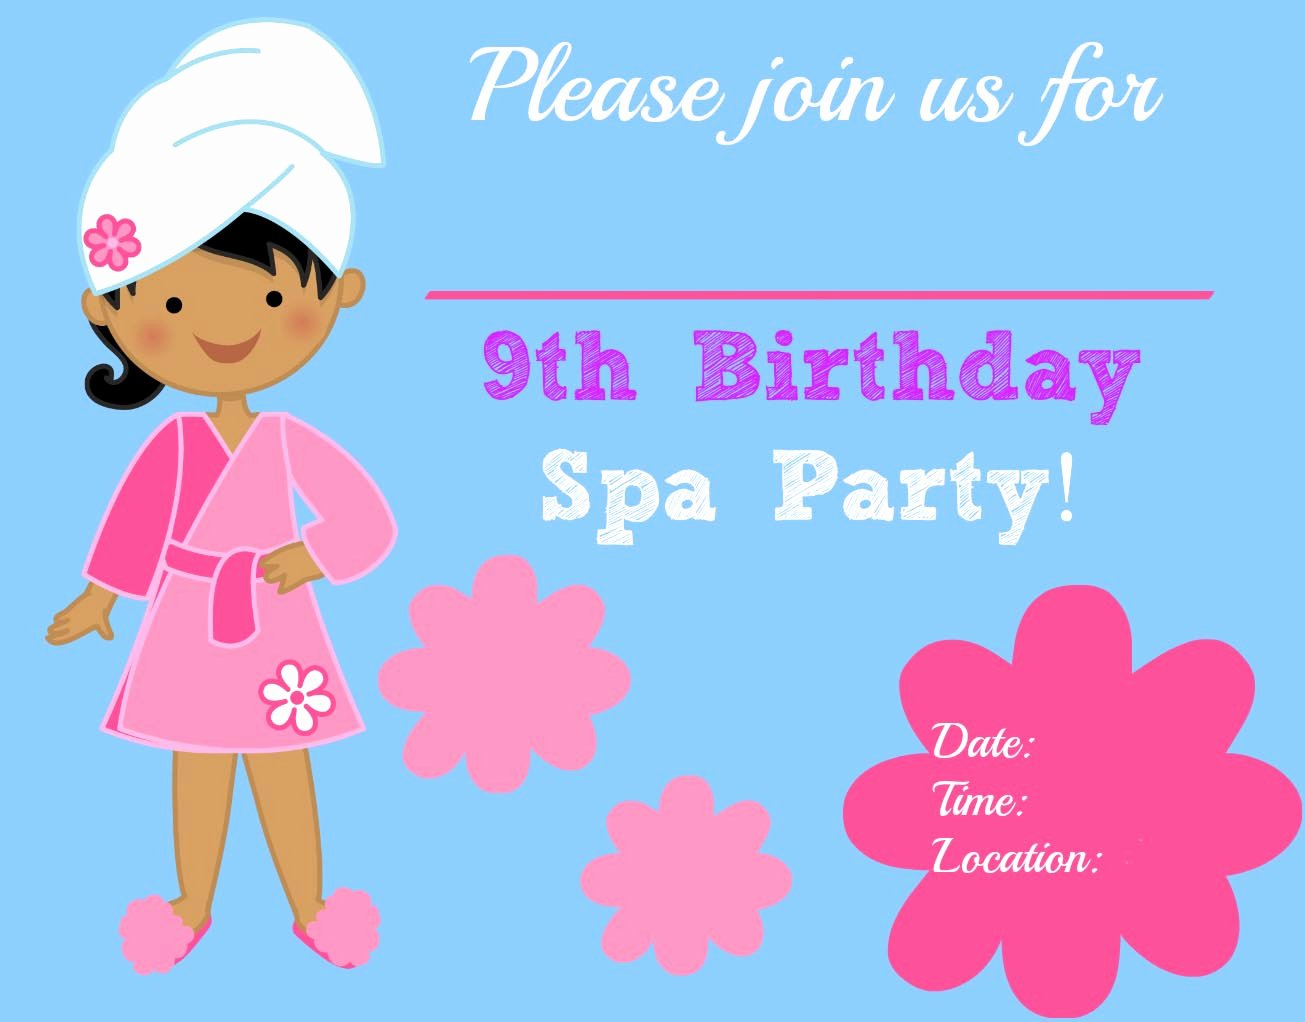 Free Spa Party Invitations Elegant Making Spa Party Invitations